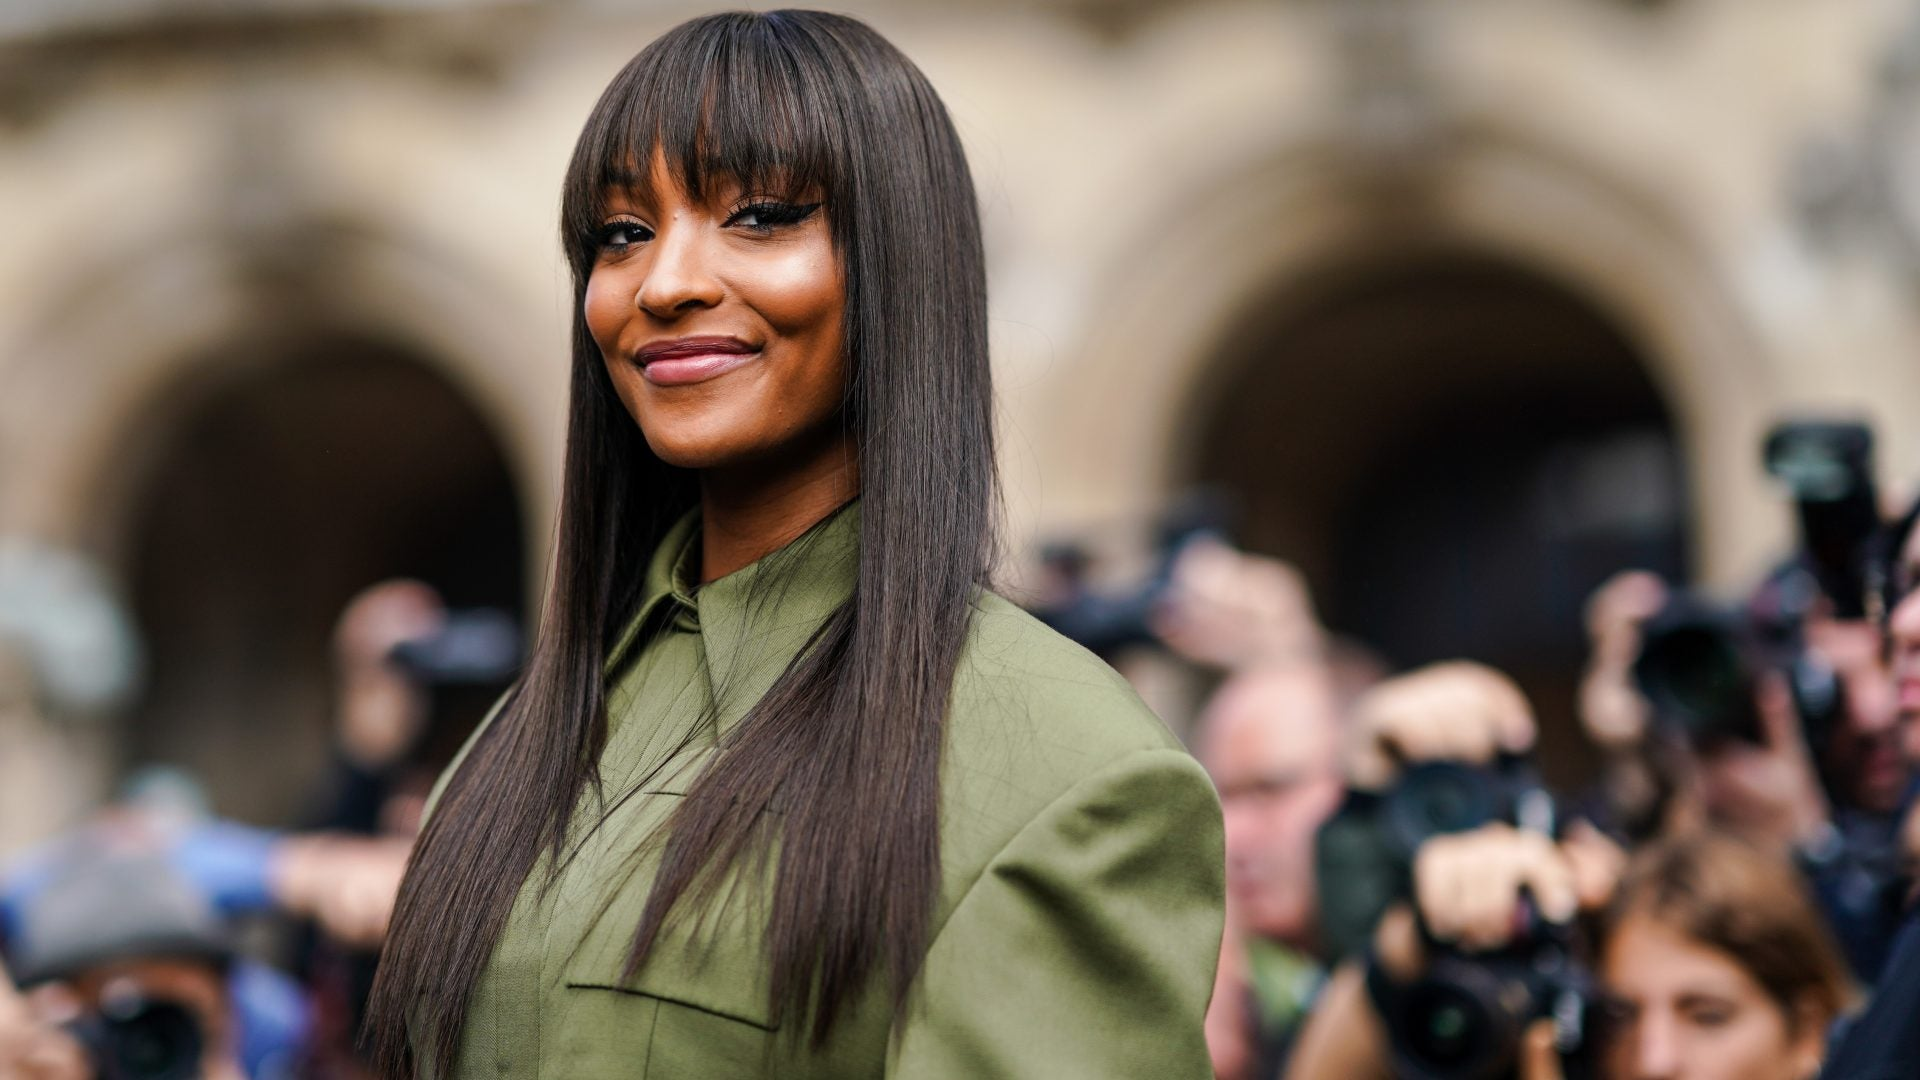 Model Jourdan Dunn Is Engaged